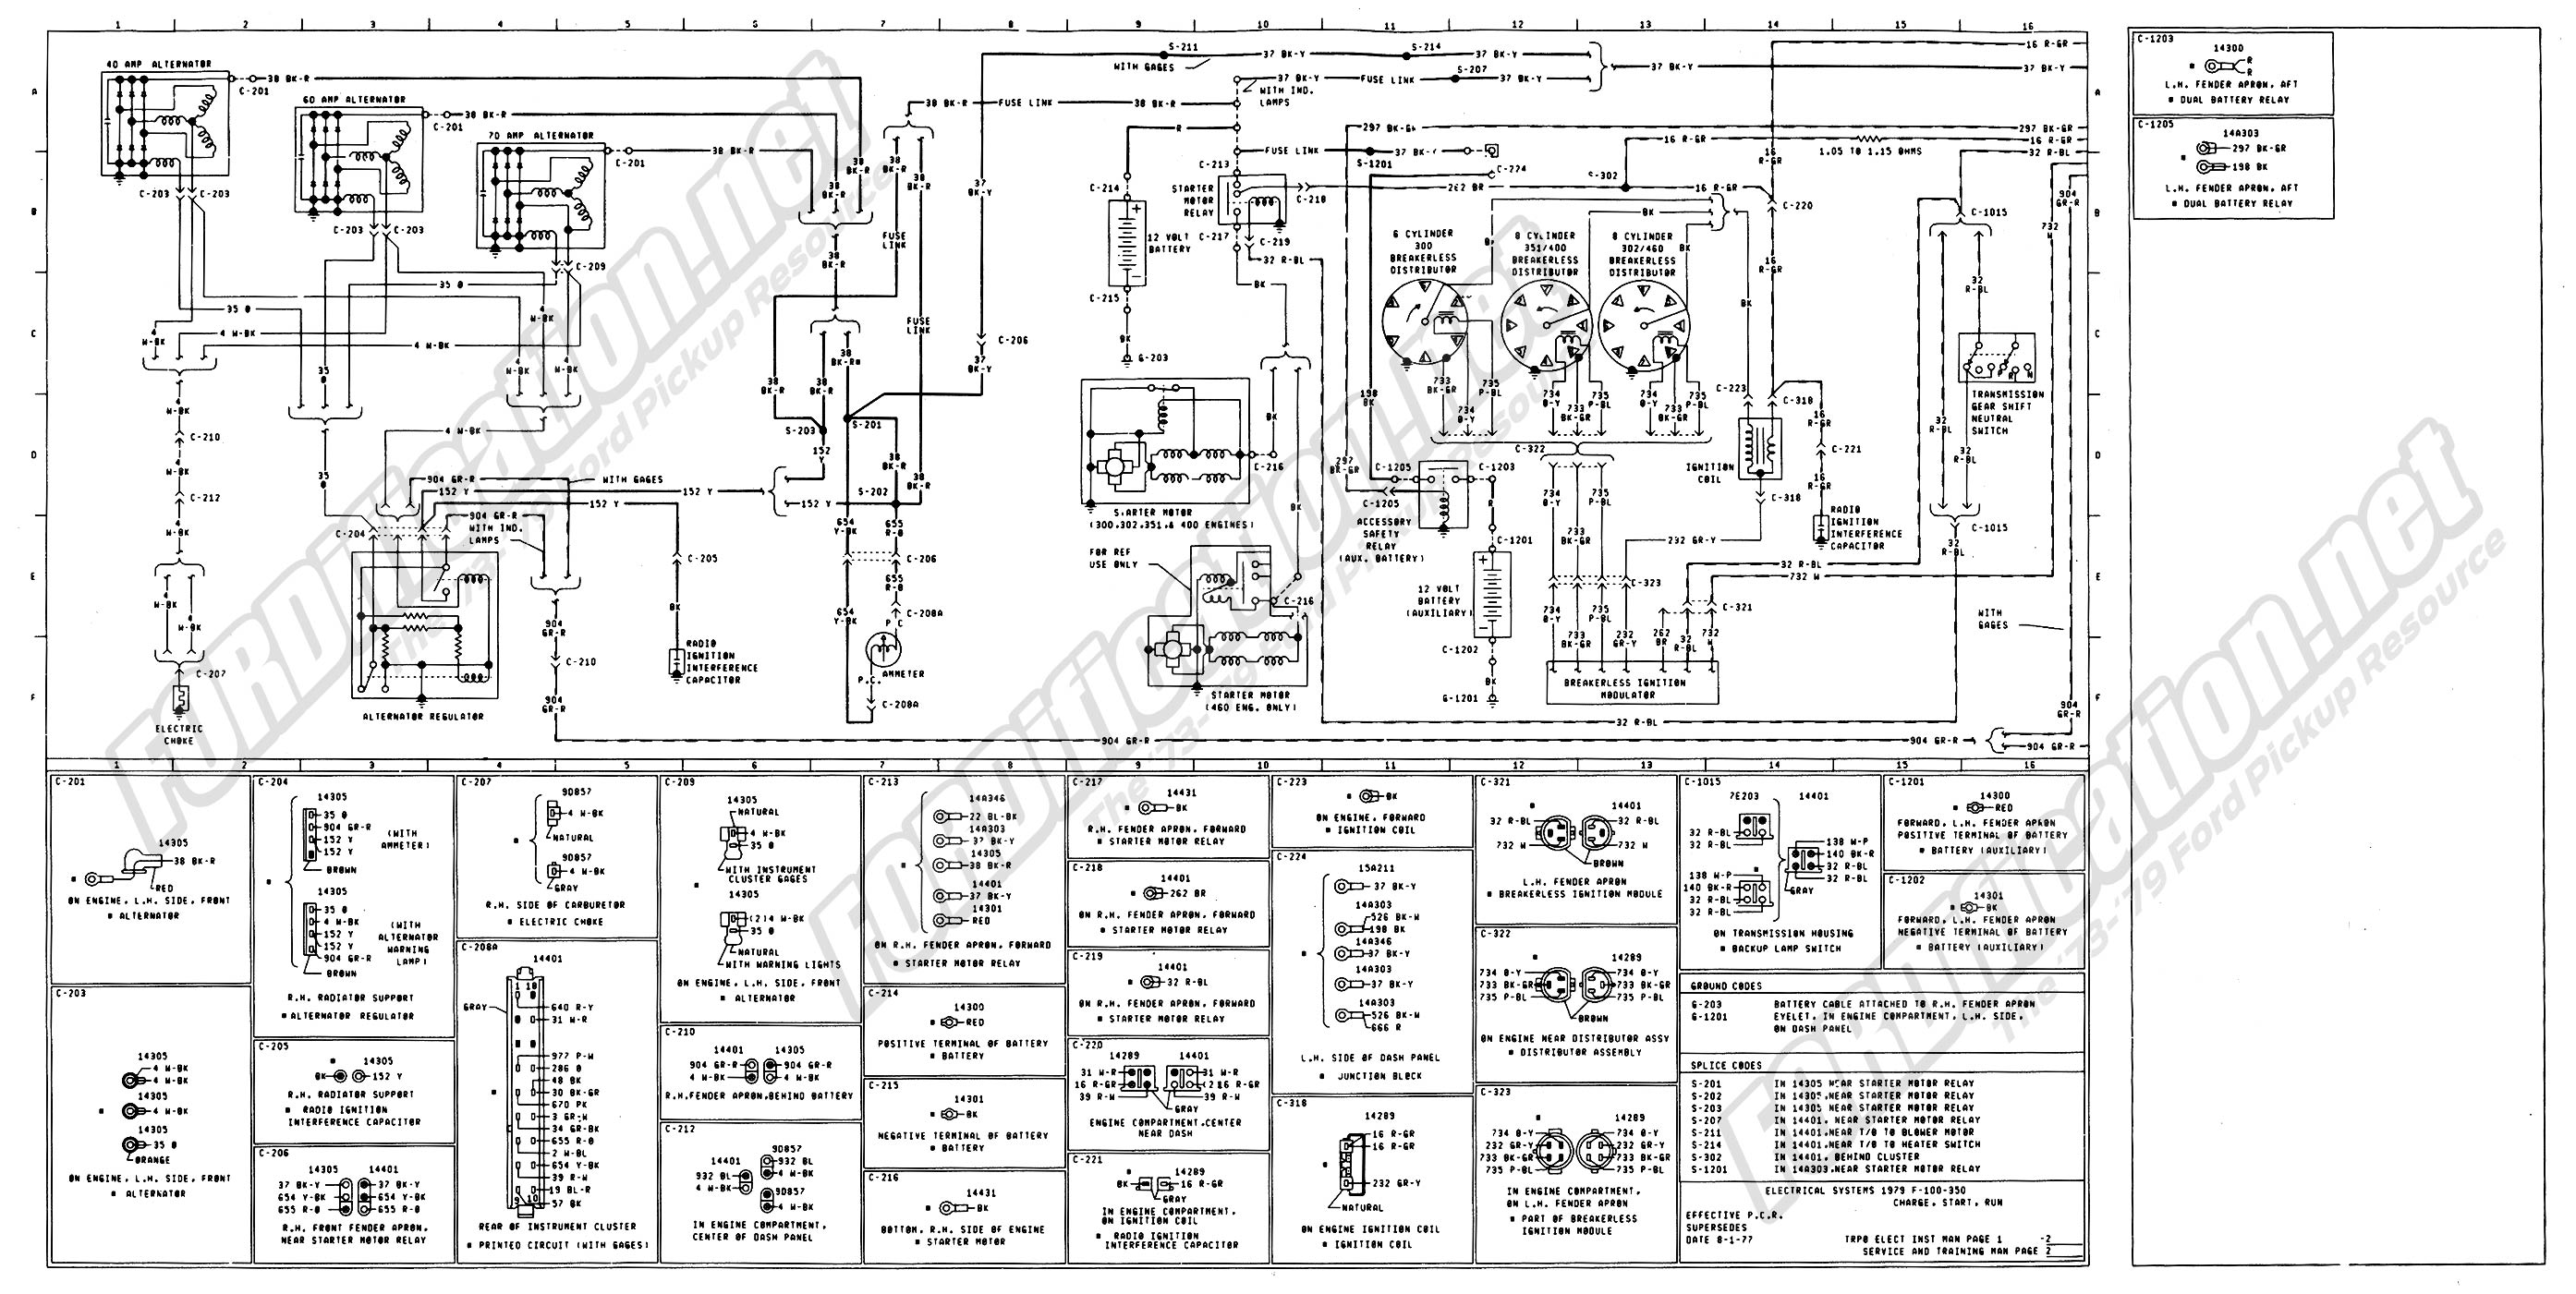 wiring_79master_2of9 1979 ford f150 wiring diagram 1979 ford f150 fuse diagram \u2022 wiring ford truck wiring diagrams free at edmiracle.co